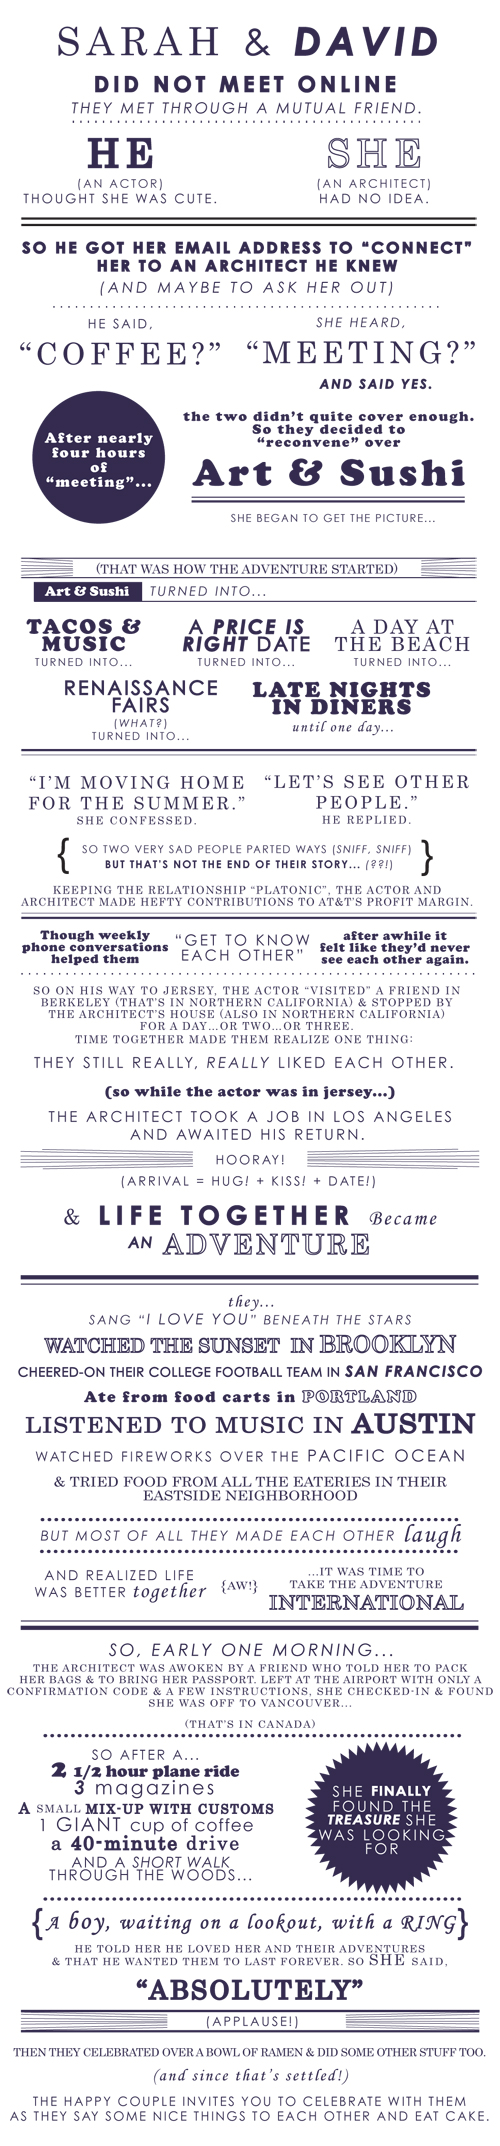 david magidoff sarah magidoff funny wedding invitation typography graphic design sweet love story